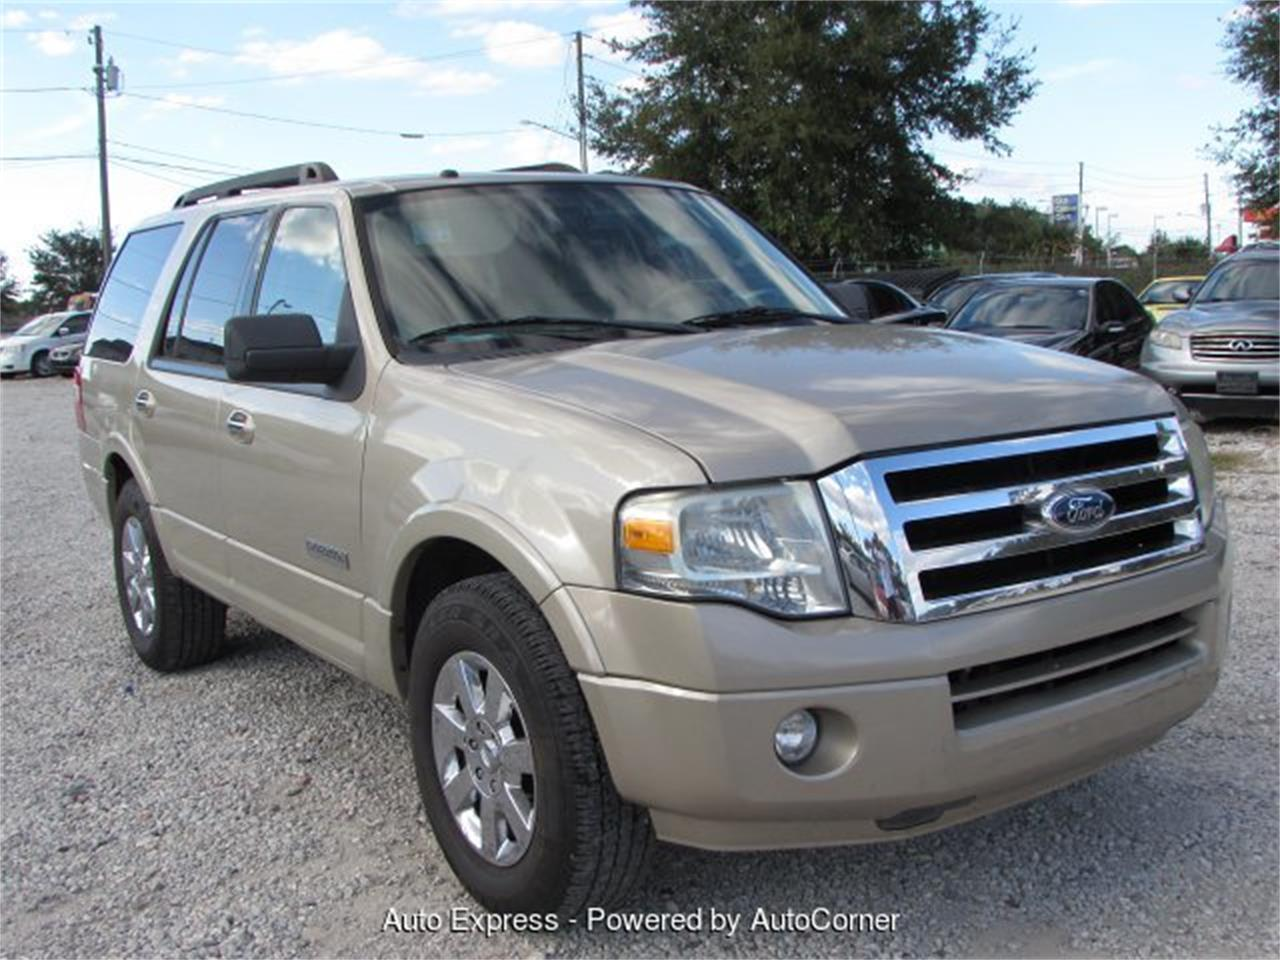 2008 Ford Expedition for sale in Orlando, FL